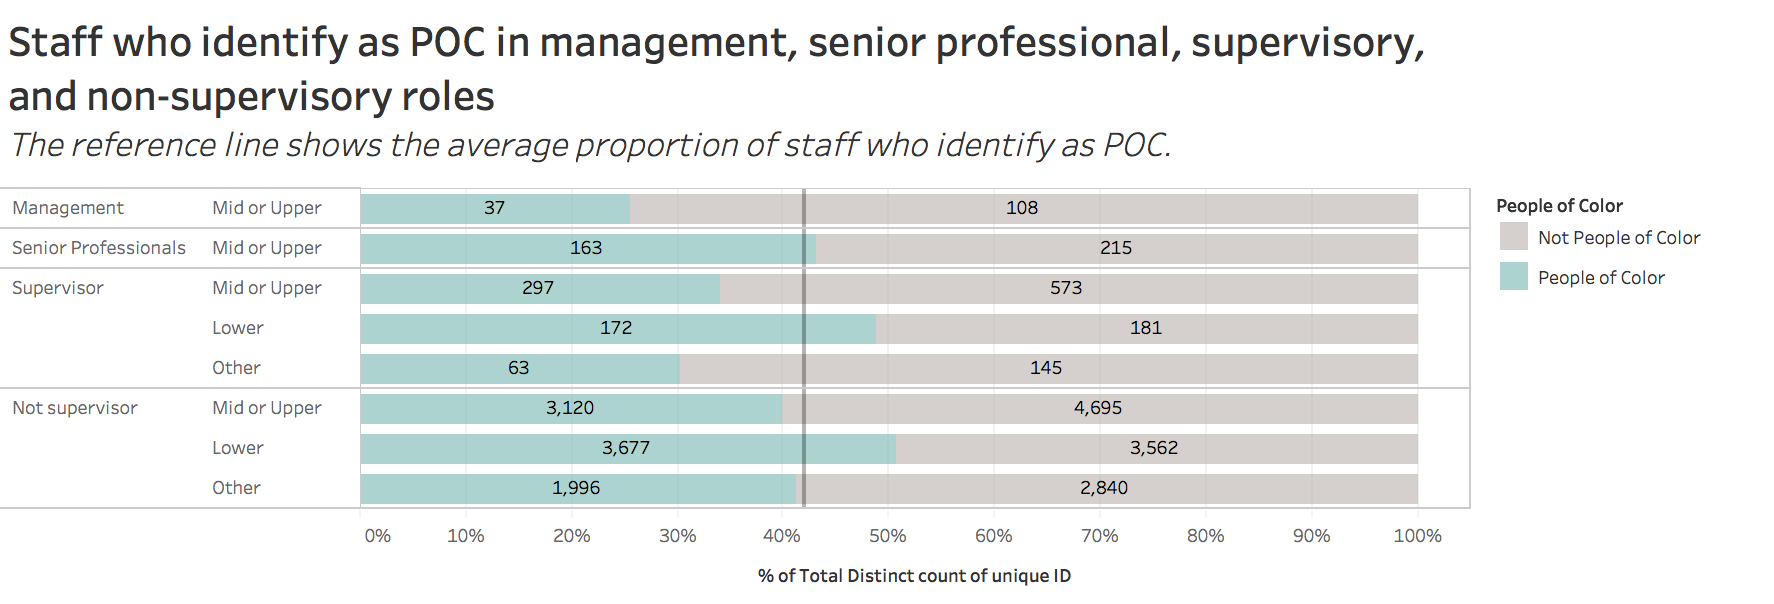 staff who identify as POC in management, senior professional, supervisory, and non-supervisory roles